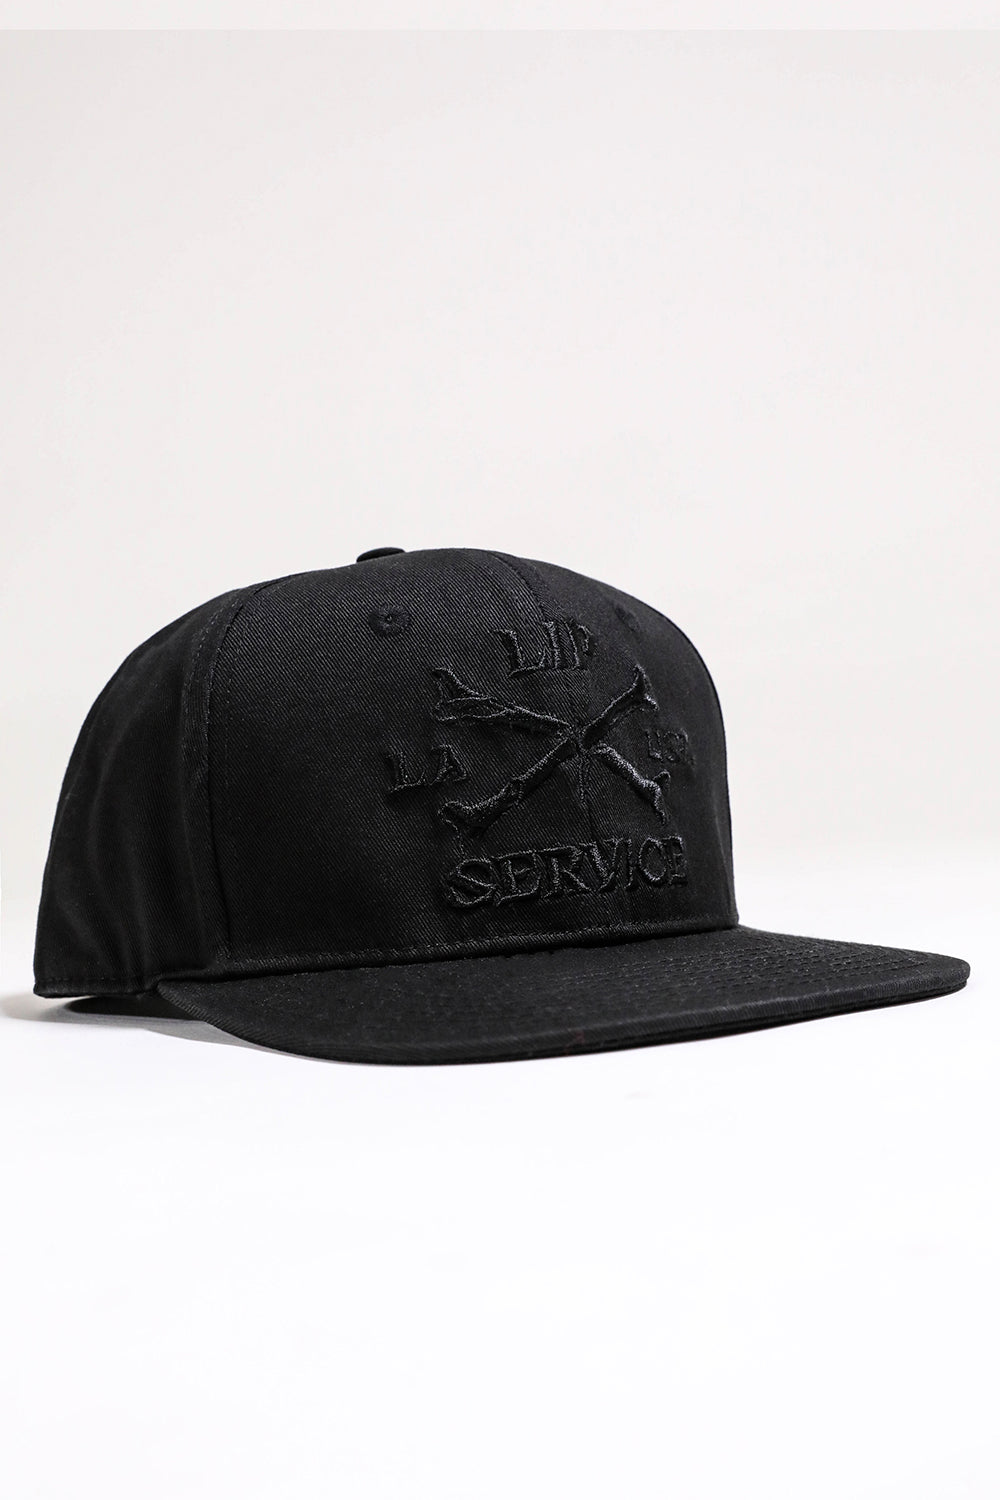 Cross Bones Snapback Baseball Hat B/B-Accessories-Lip Service